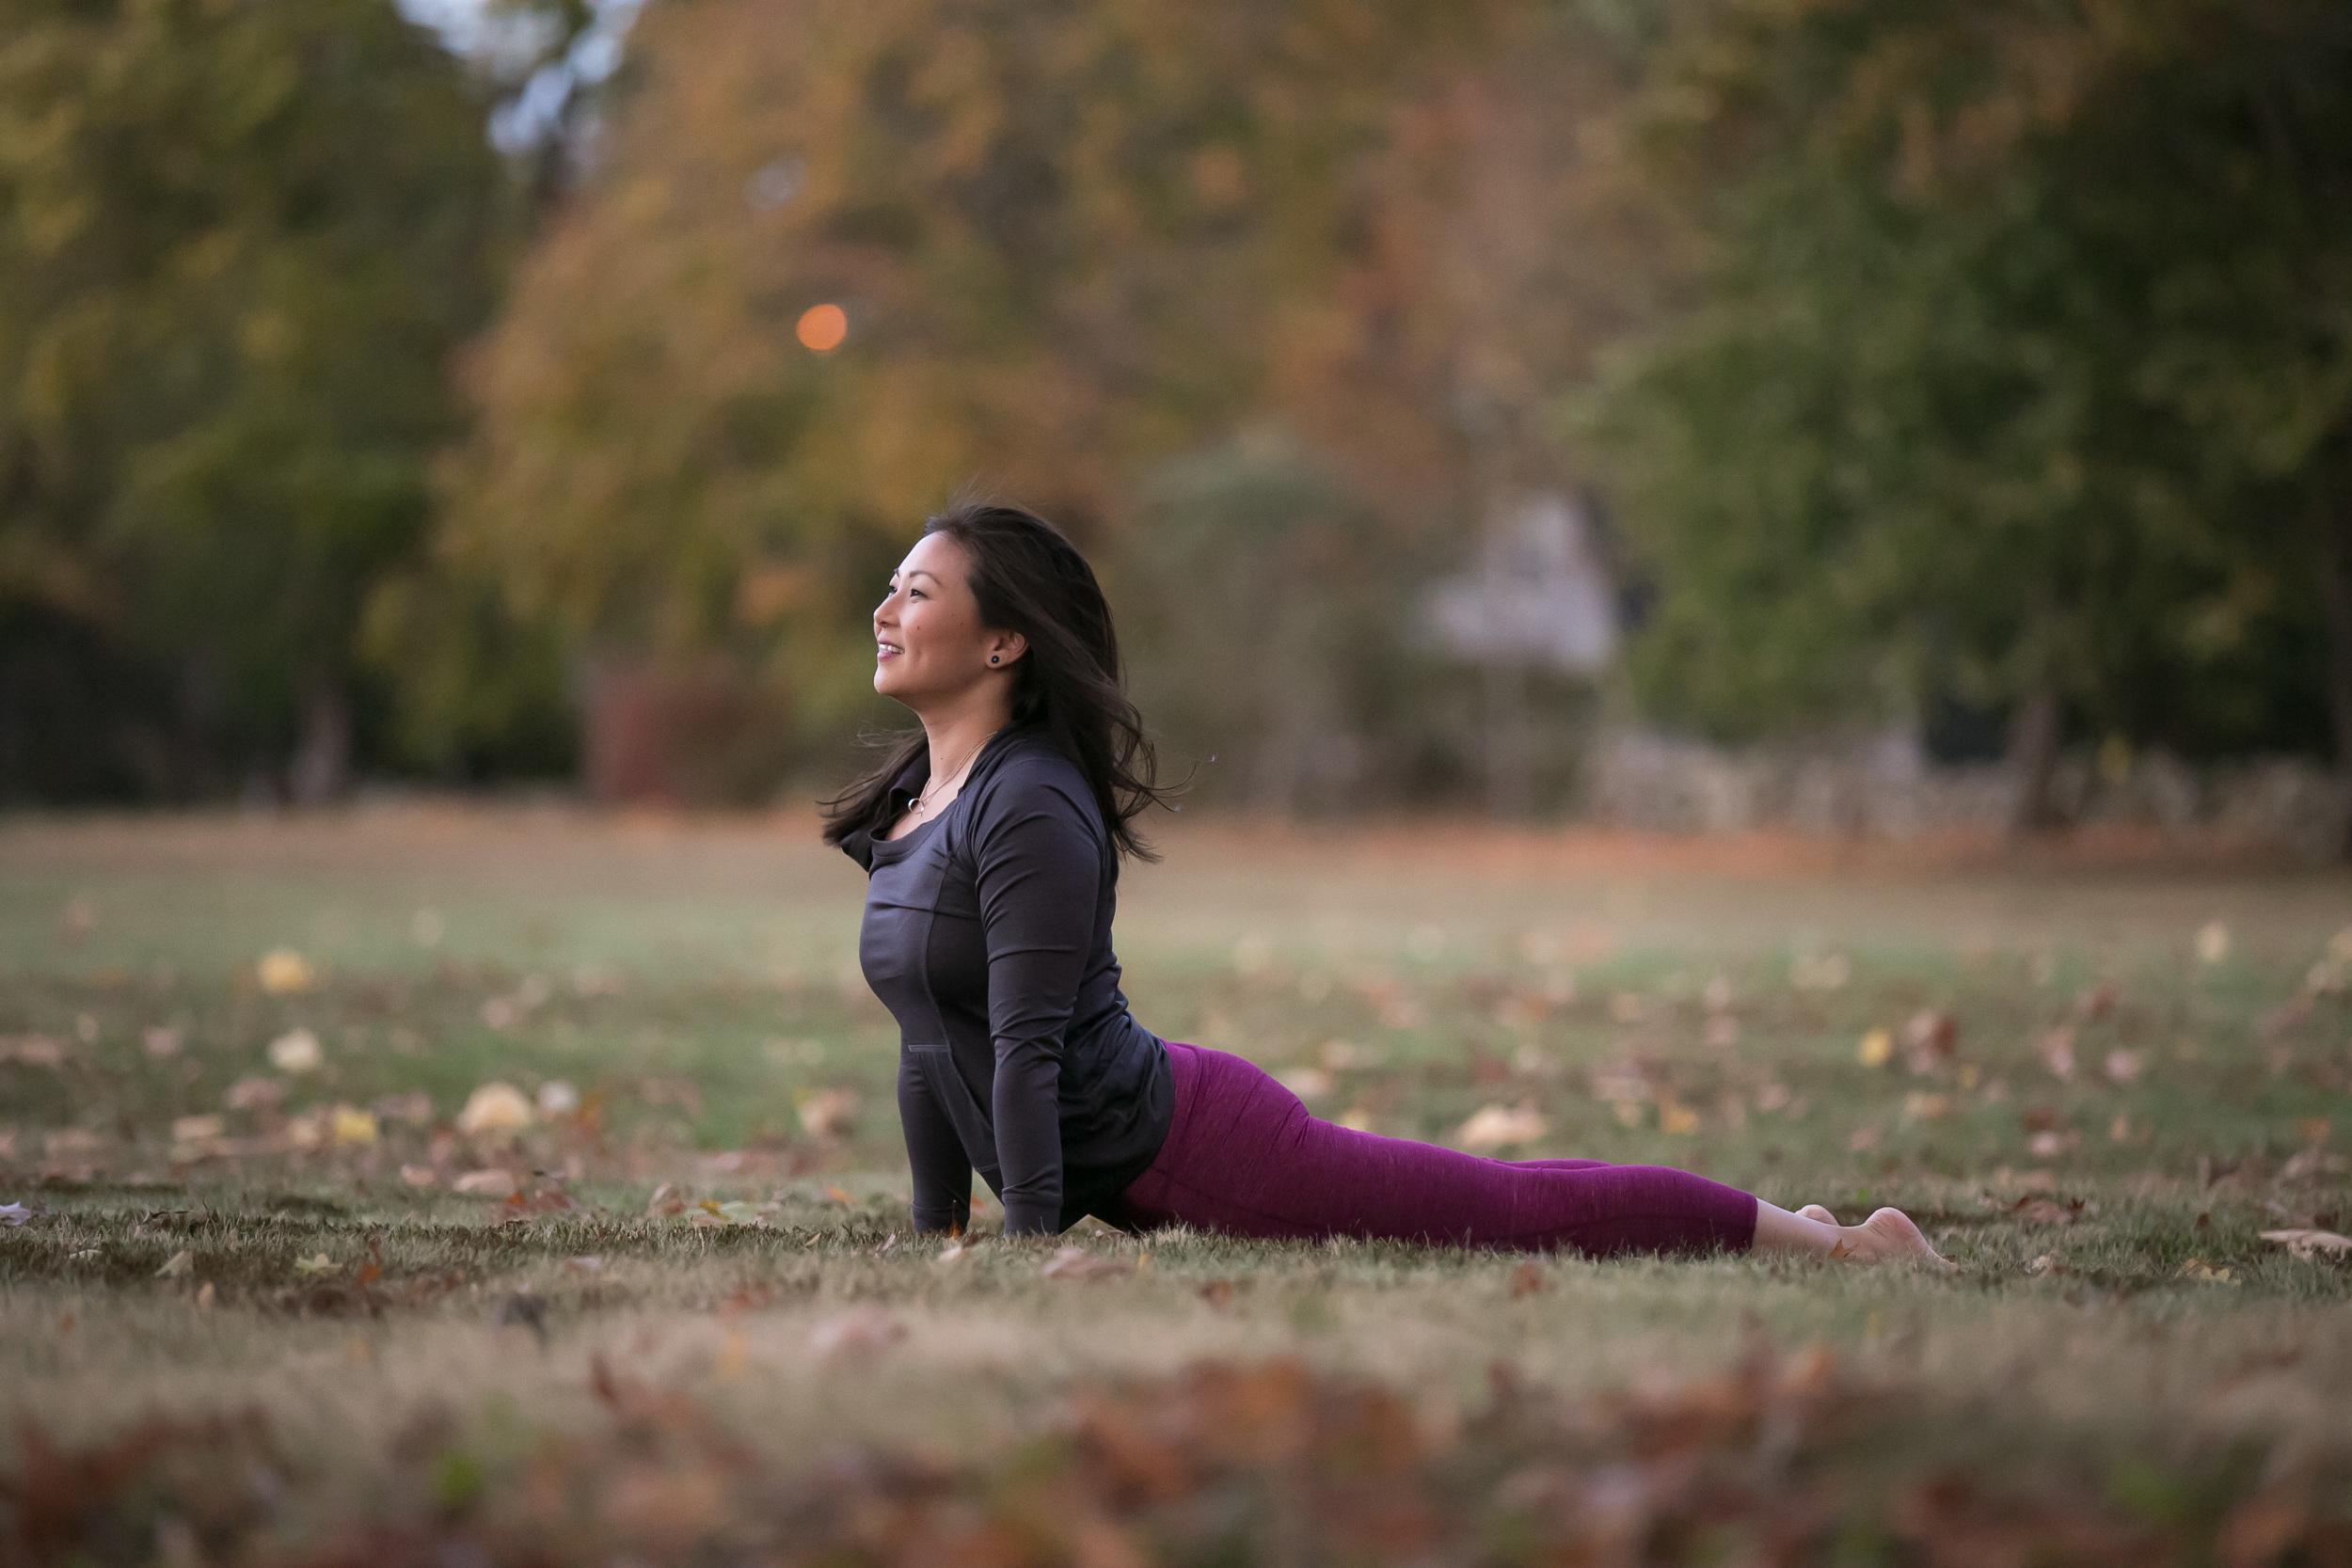 Tracy_Rodriguez_Photography_Yoga_Portfolio_Laura_Newell_Yoga-5422.jpg